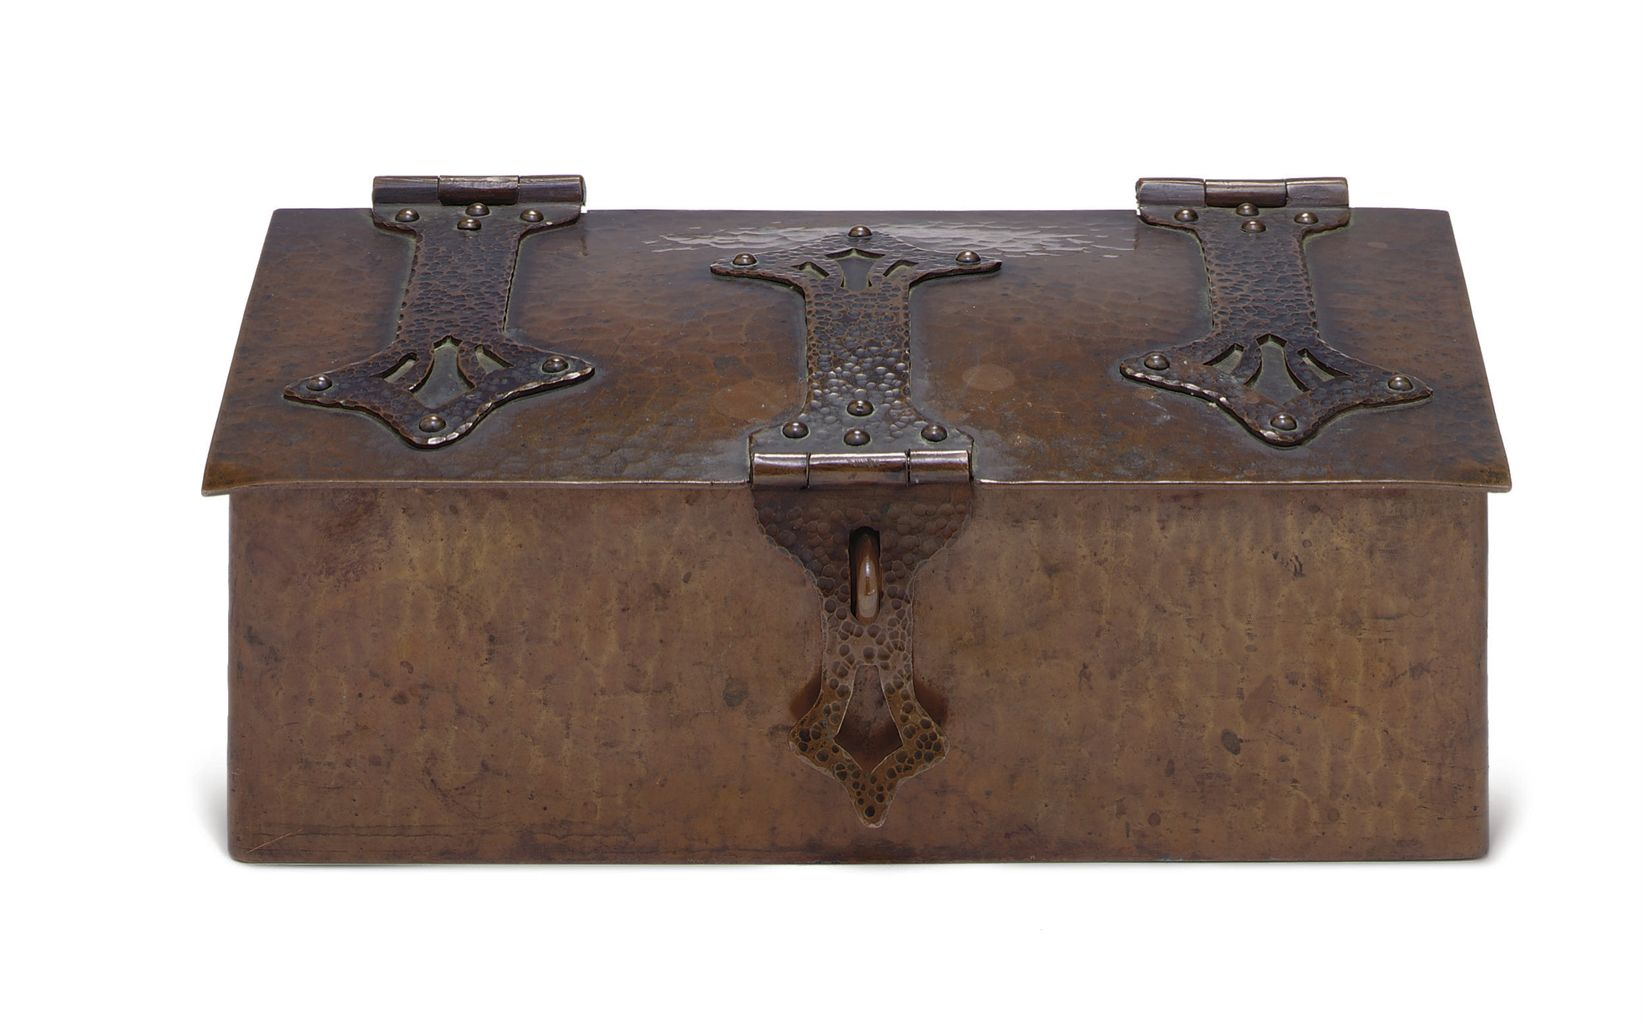 DIRK VAN ERP (1860-1933) | A PATINATED COPPER BOX, CIRCA 1900